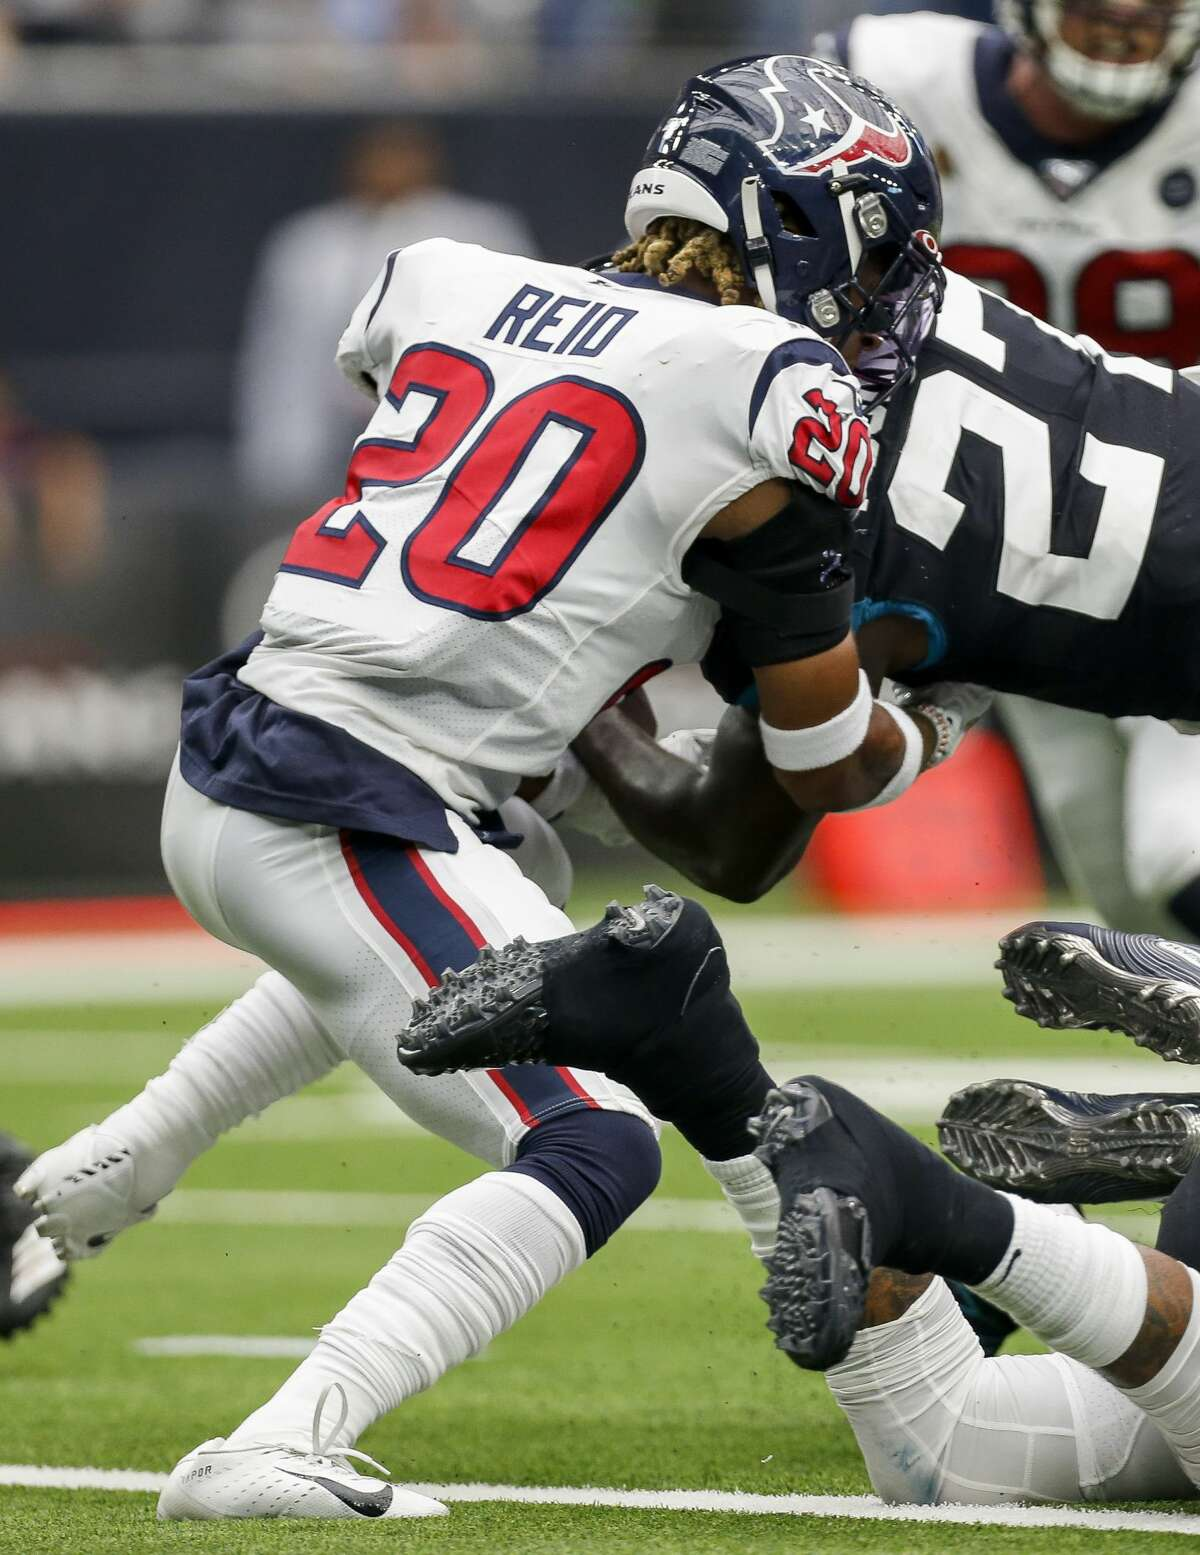 Houston Texans strong safety Justin Reid (20) stops Jacksonville Jaguars running back Leonard Fournette (27) from converting a two-point conversion in the fourth quarter of an NFL game at NRG Stadium Sunday, Sept. 15, 2019, in Houston. The Texans won 13-12.